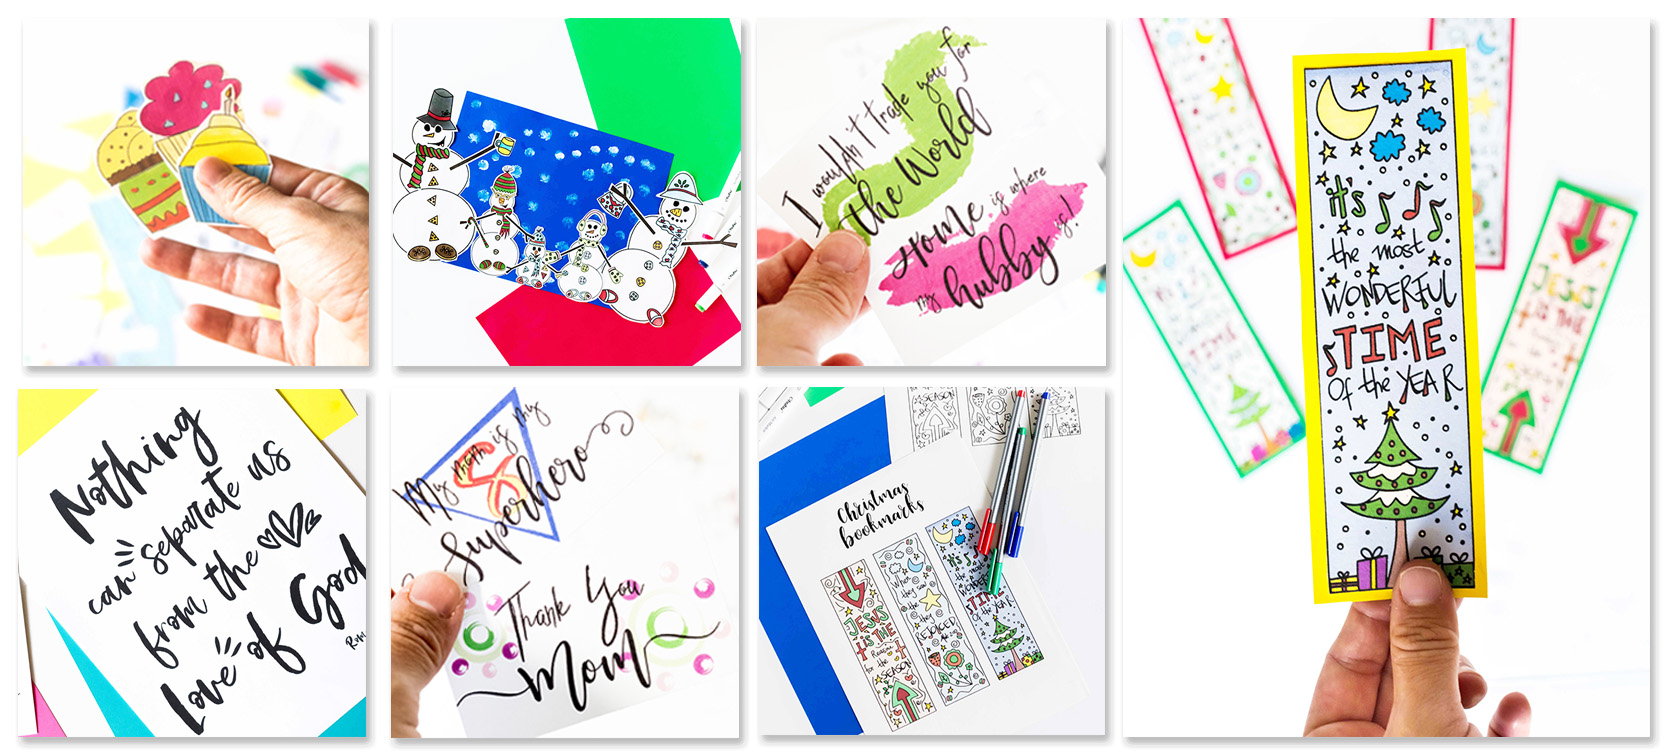 Inside of the holiday printables library example. Different thumbnails with colors and activities for children, family, etc